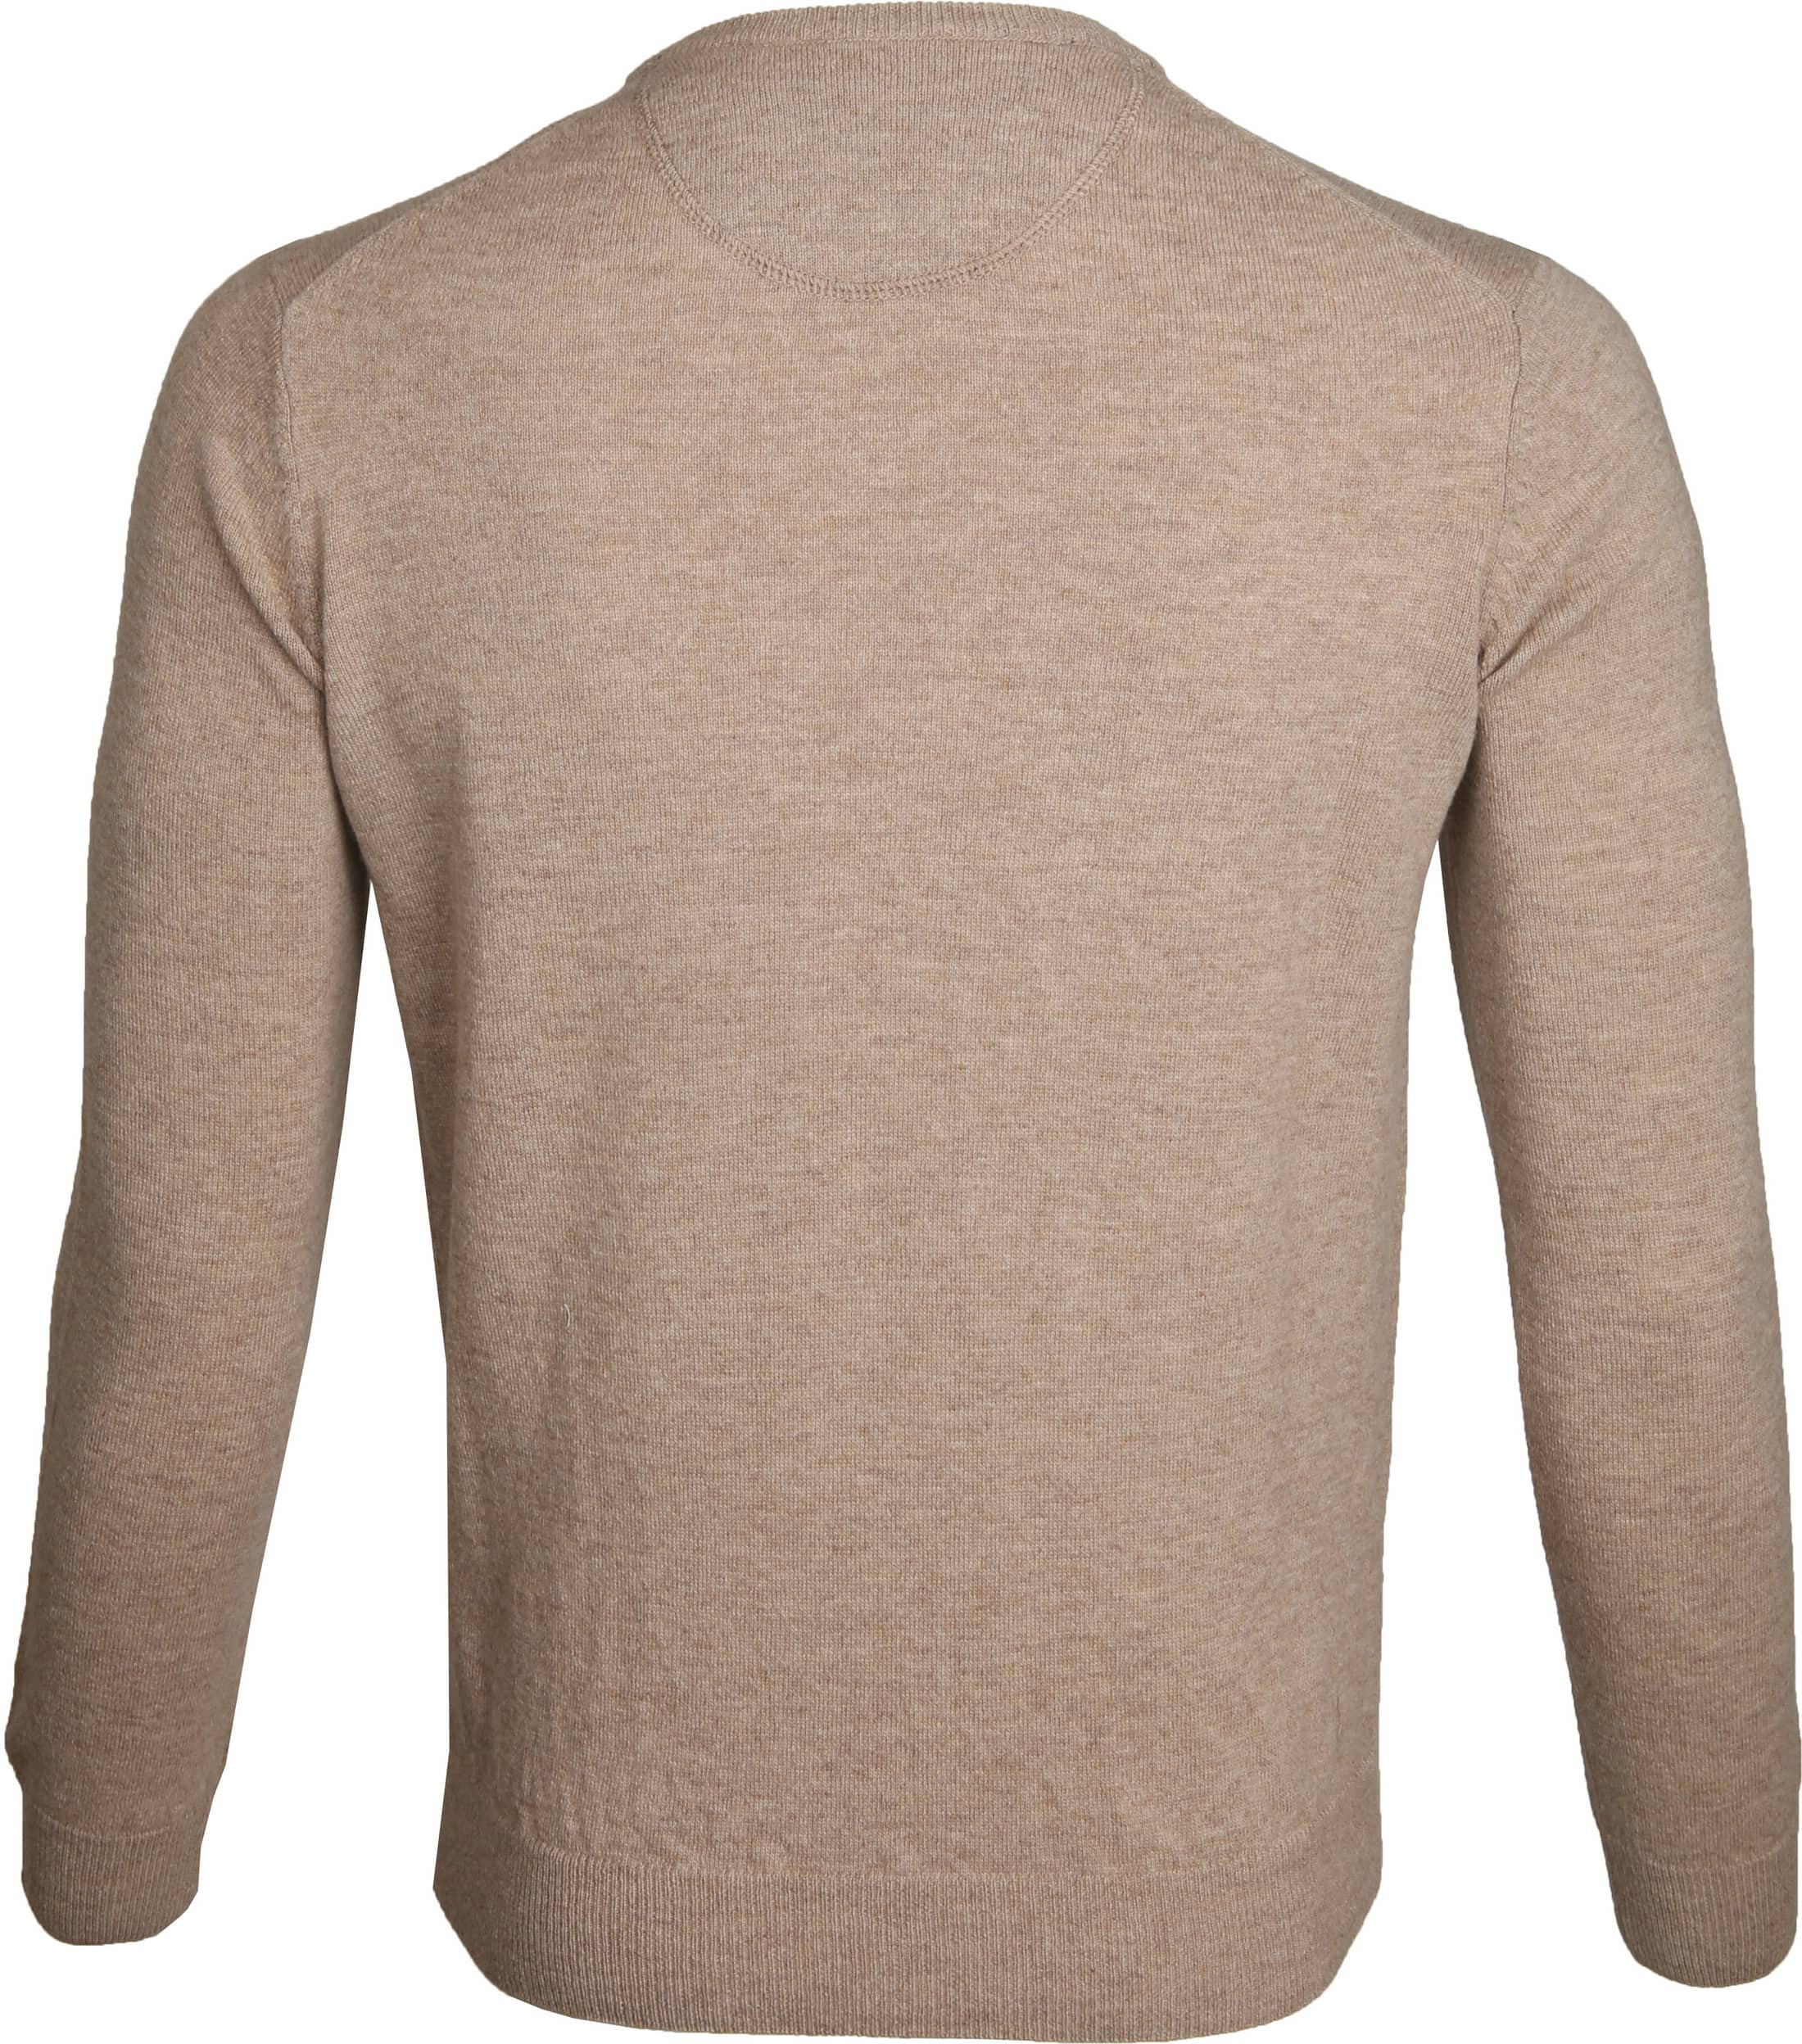 Suitable Pullover Lambswool V-Neck Beige foto 2